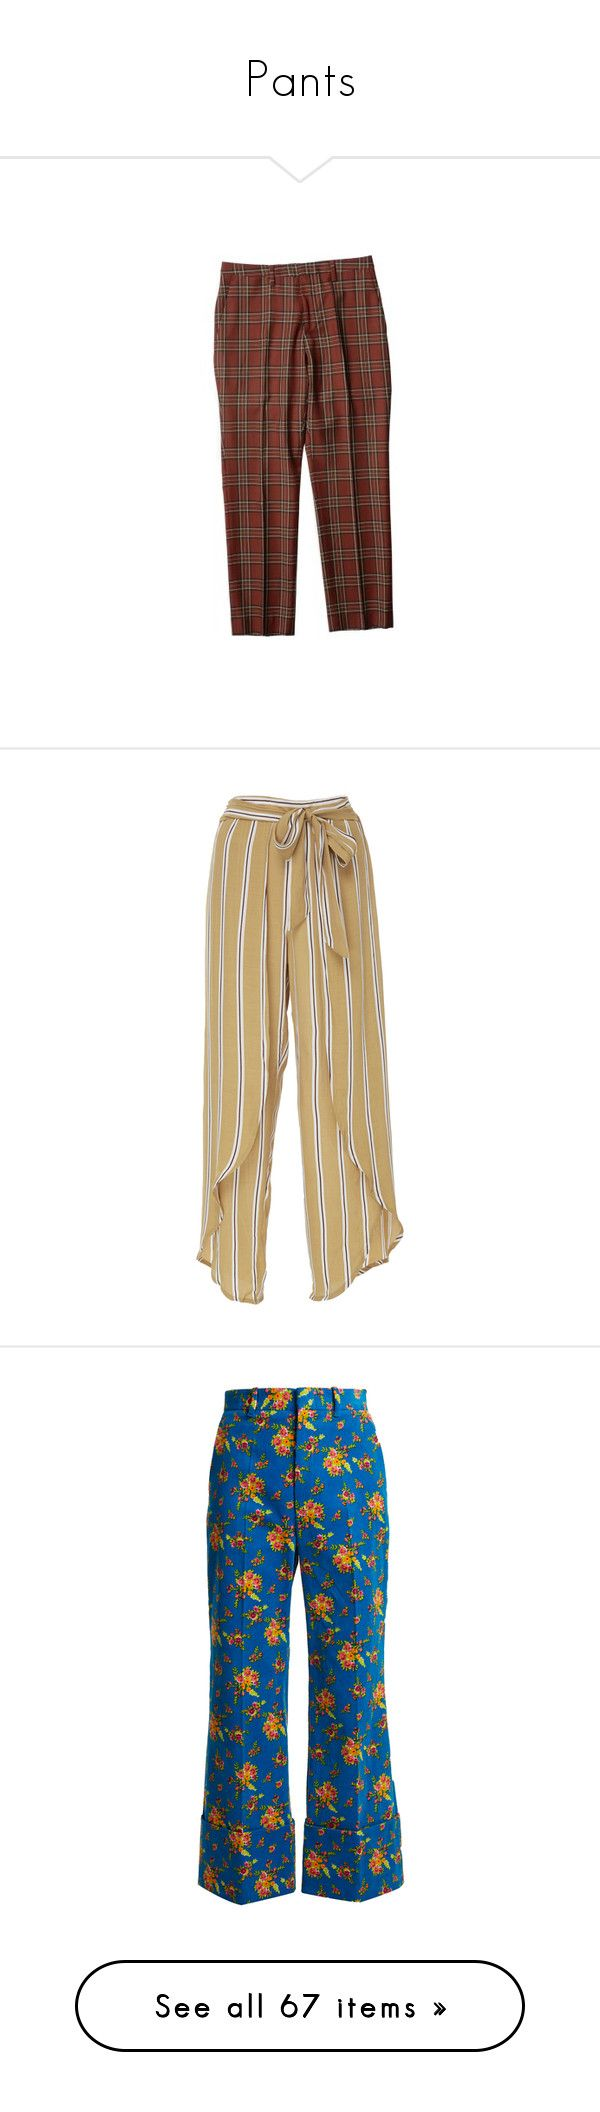 """""""Pants"""" by beatrizmx3 ❤ liked on Polyvore featuring pants, capris, bottoms, trousers, pantalones, slim fitted pants, cropped trousers, slim fit wool pants, brown slim pants and slim fit pants"""